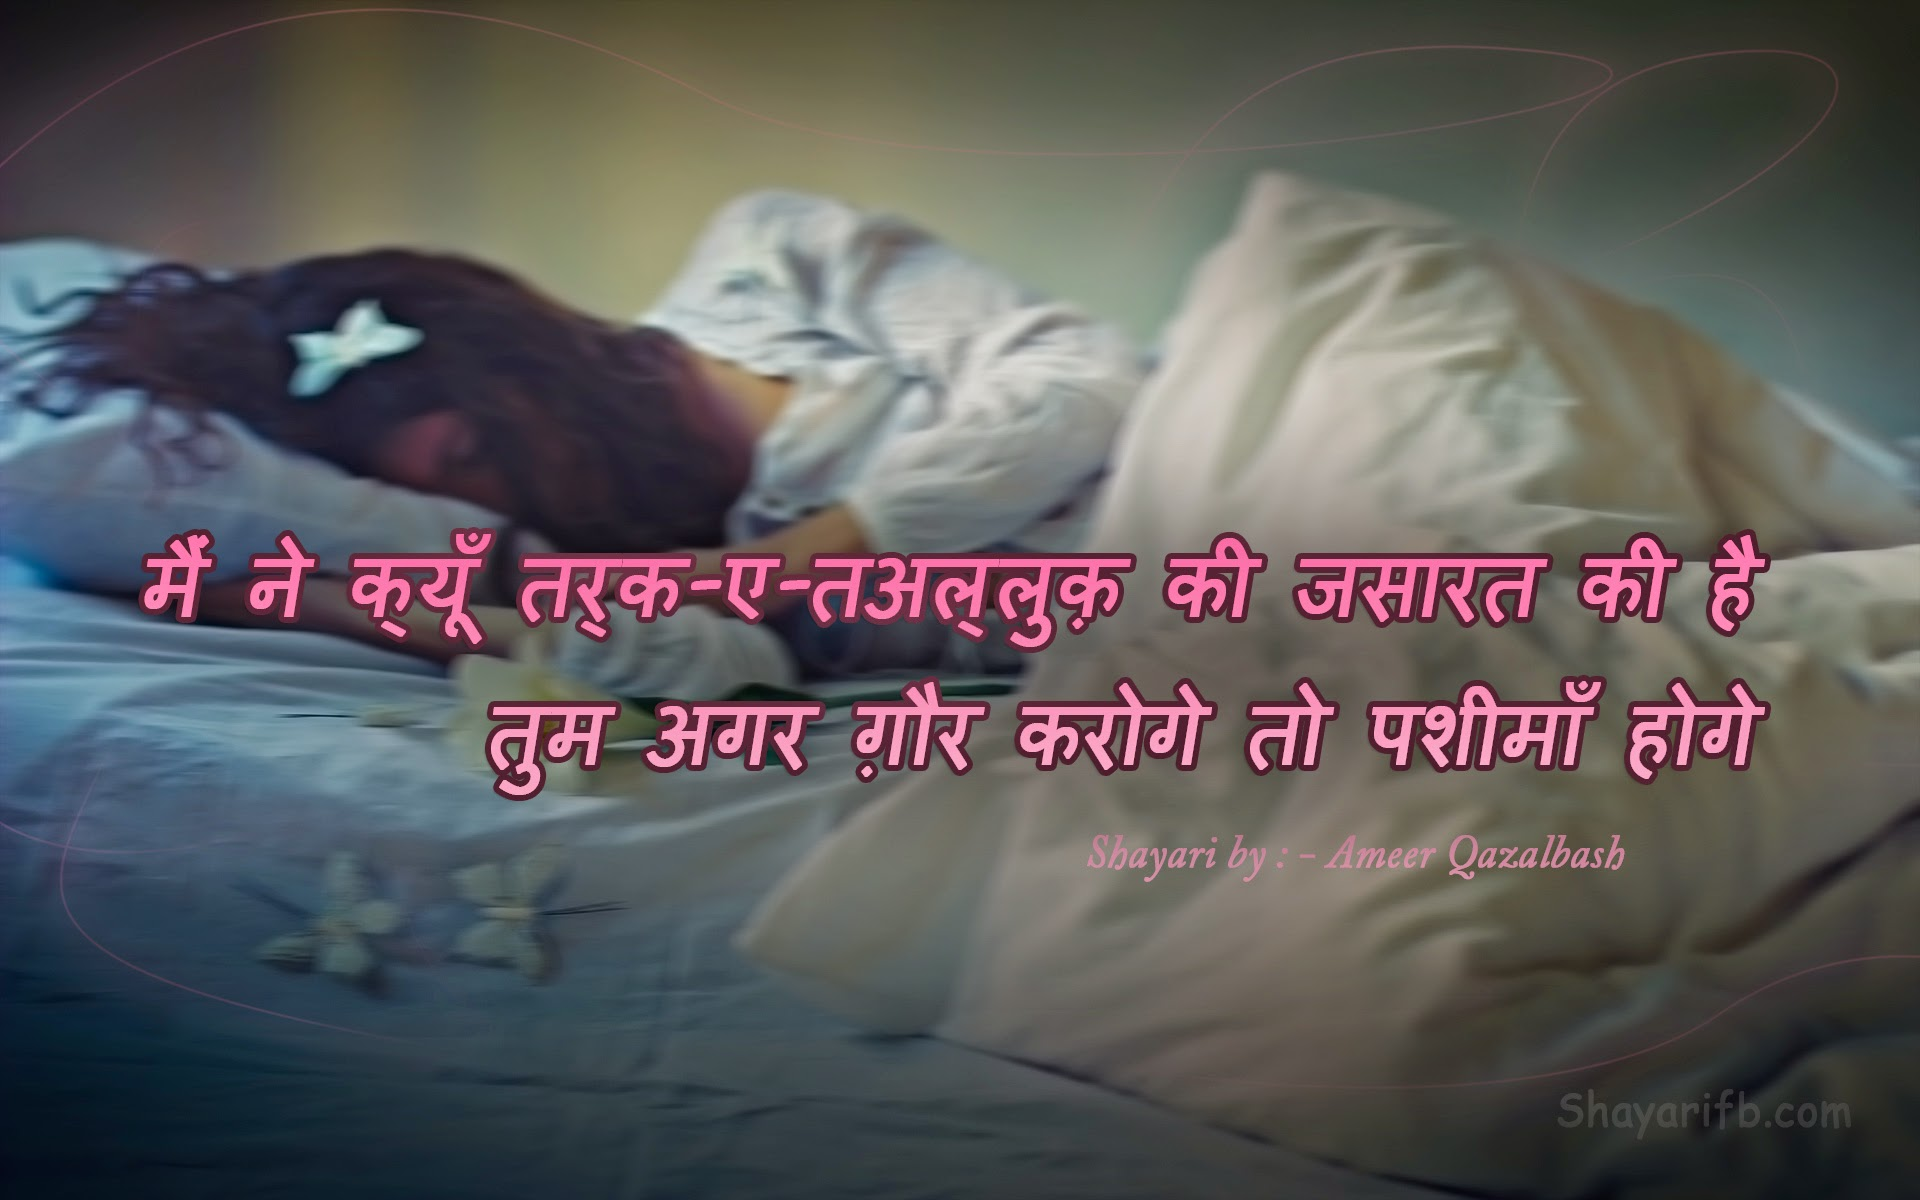 Love-shayari-wallpaper-shayari-in-Hindi.jpg